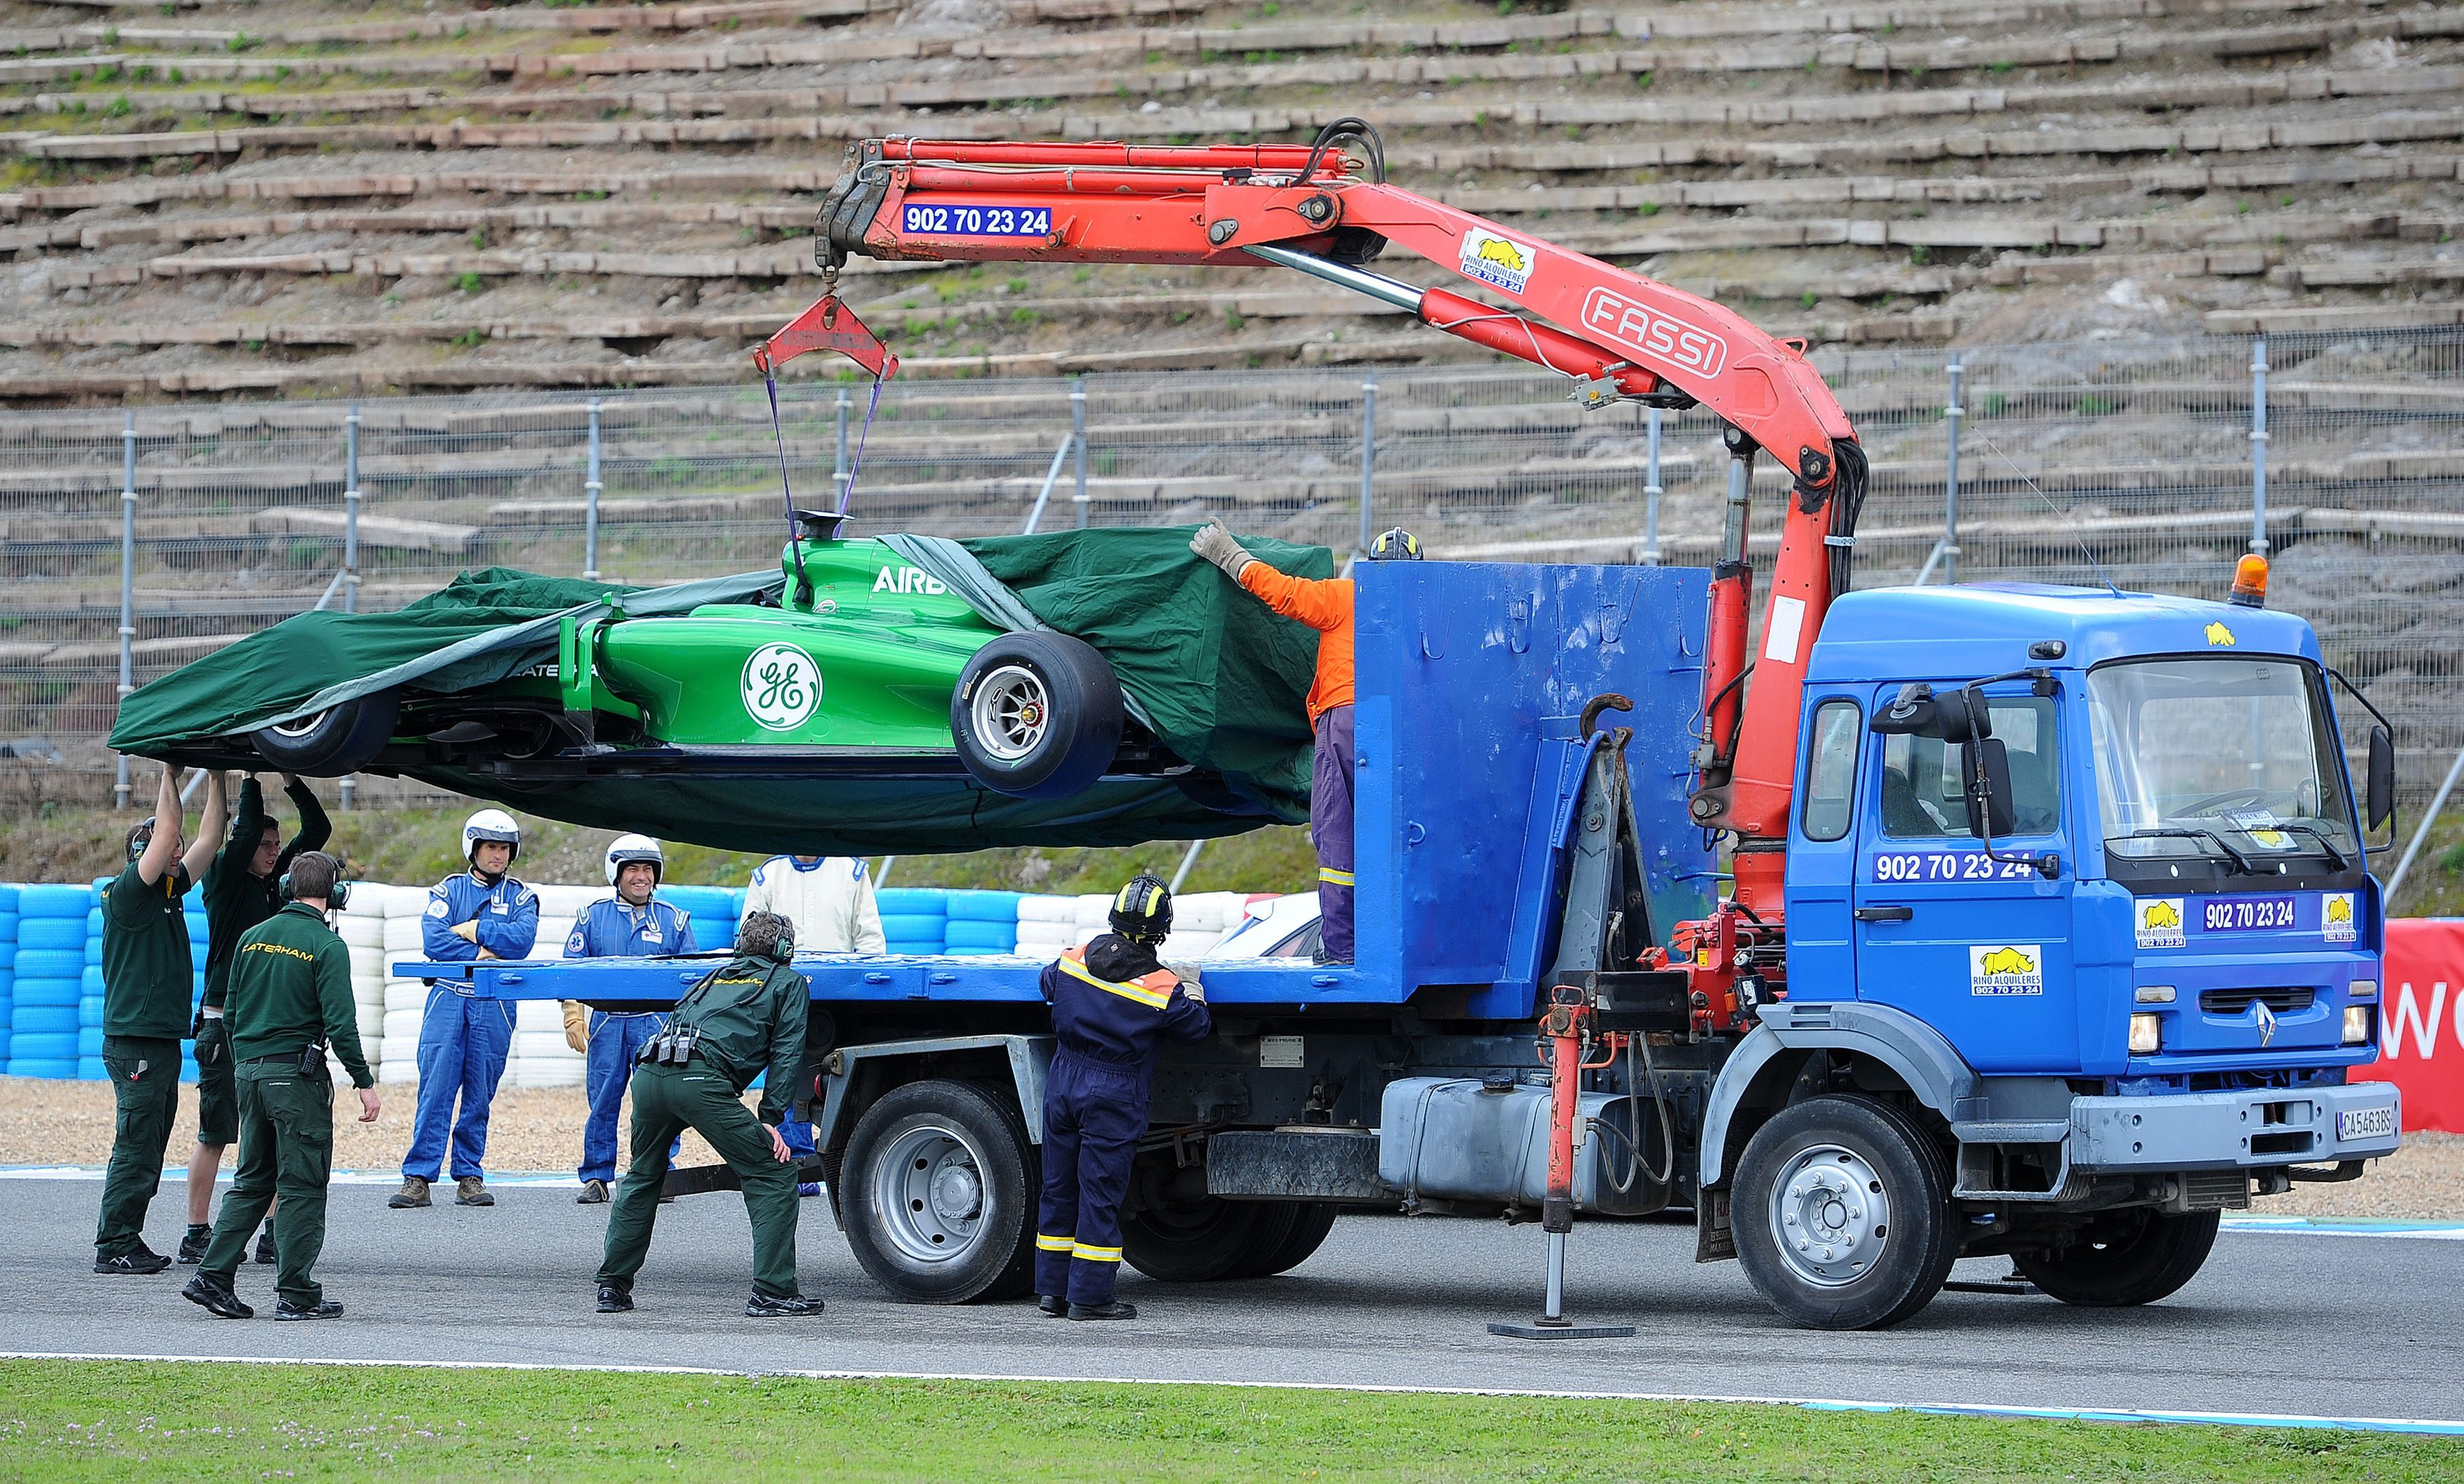 New F1 season uncertainty anxiety bolstered by Caterham and Marussia appallingness